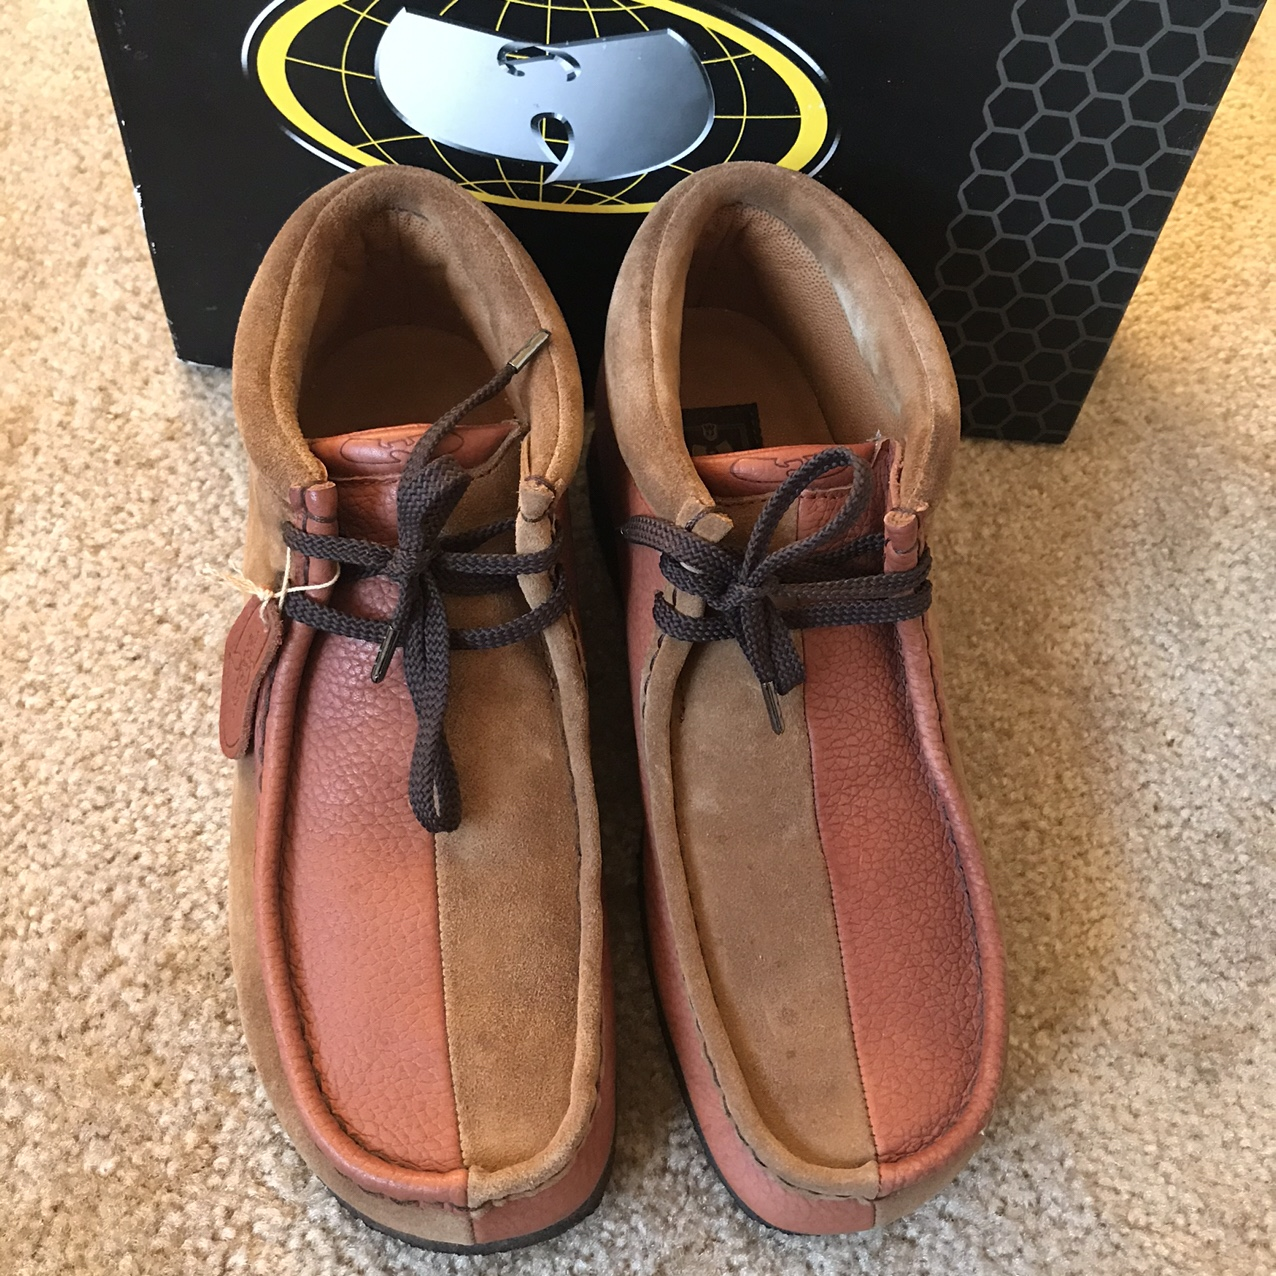 Product Image 1 - Extremely rare 90's Wu-Wear Wallabees